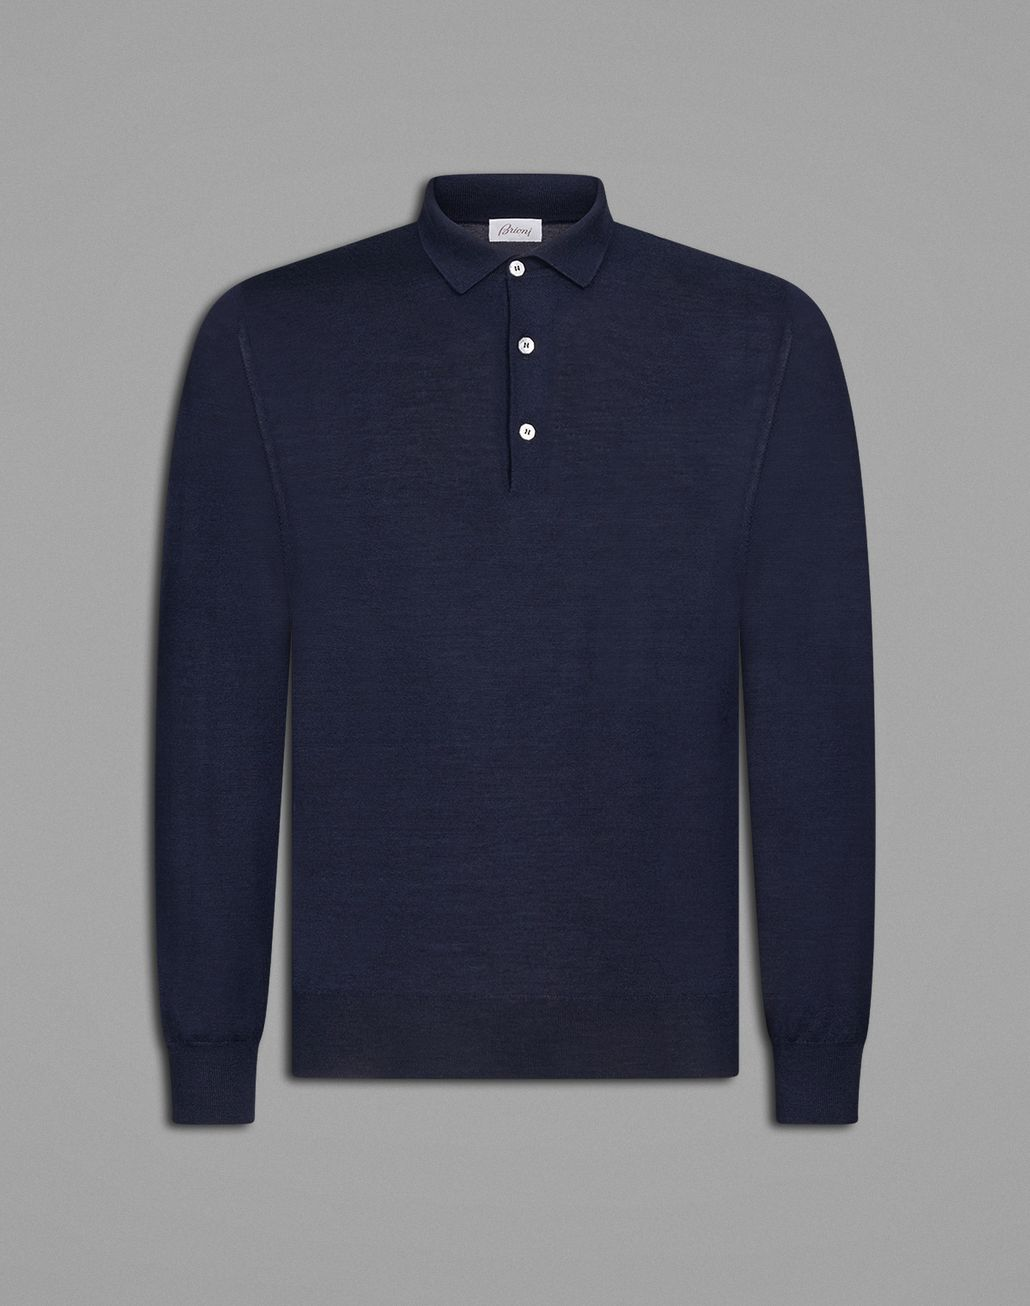 BRIONI 'Essential' Navy Blue Long Sleeved Polo Shirt Knitwear Man f